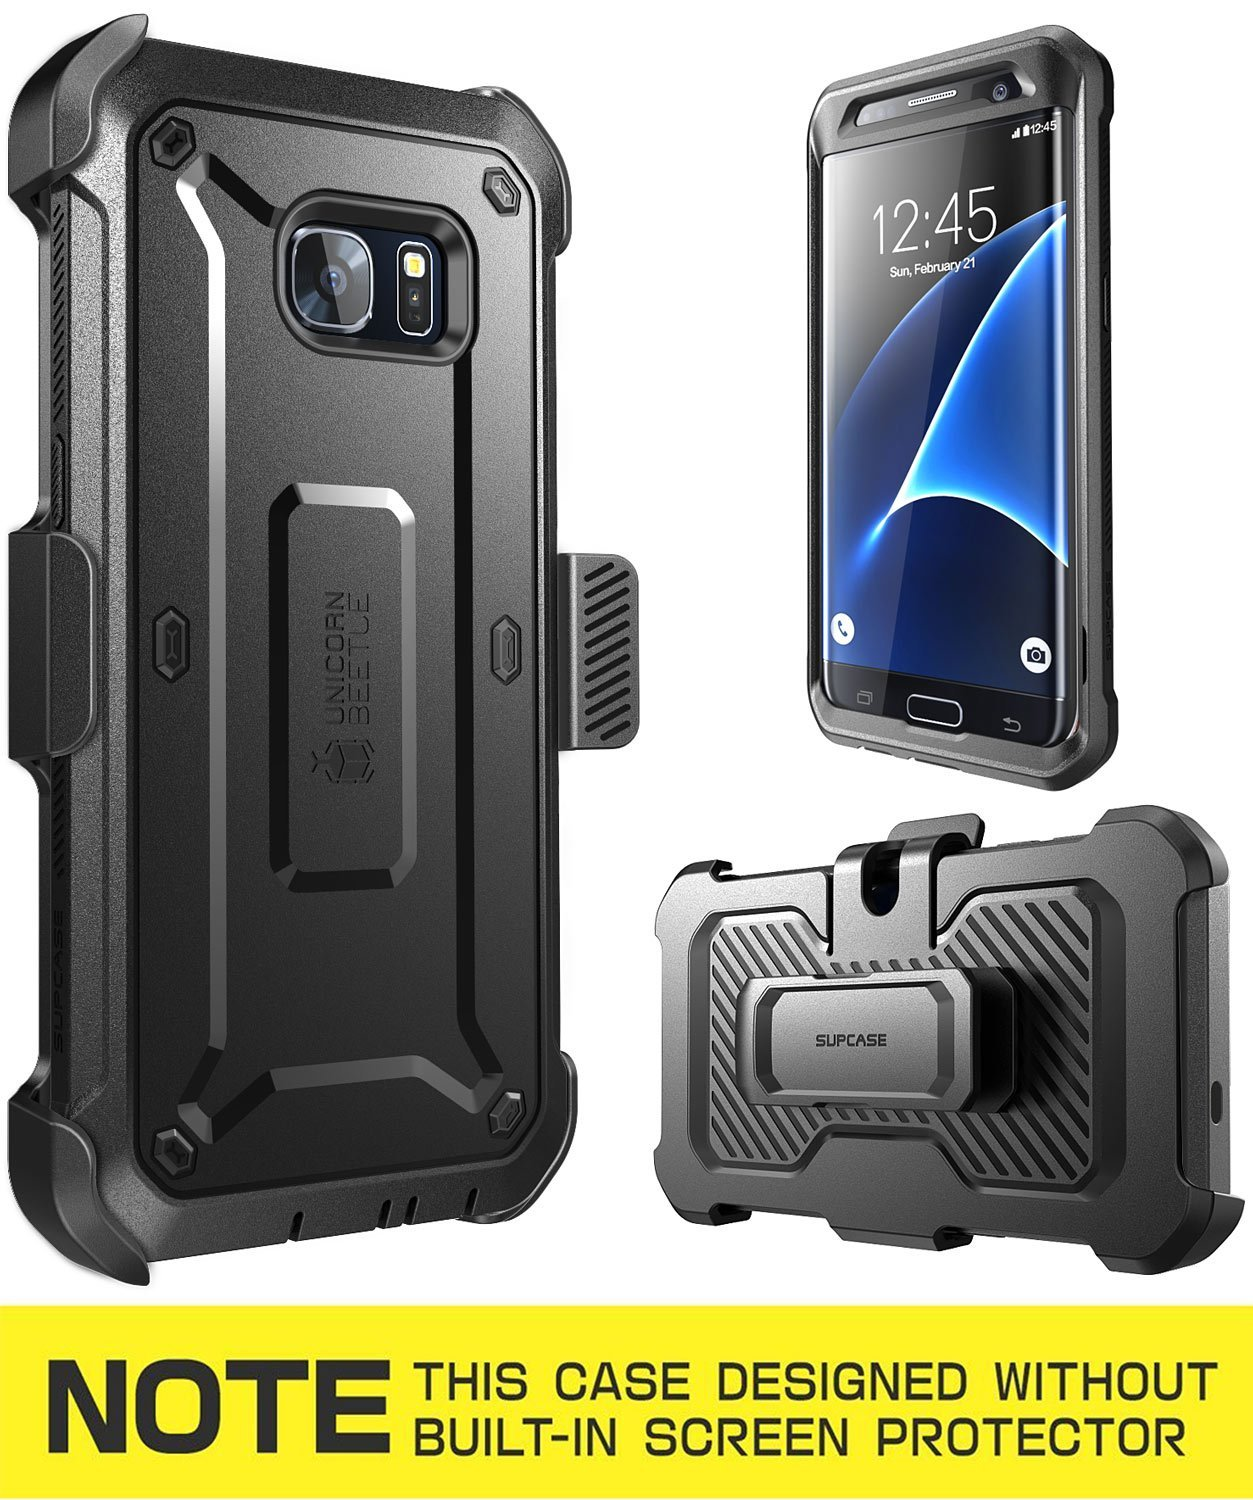 samsung s7 edge case full body